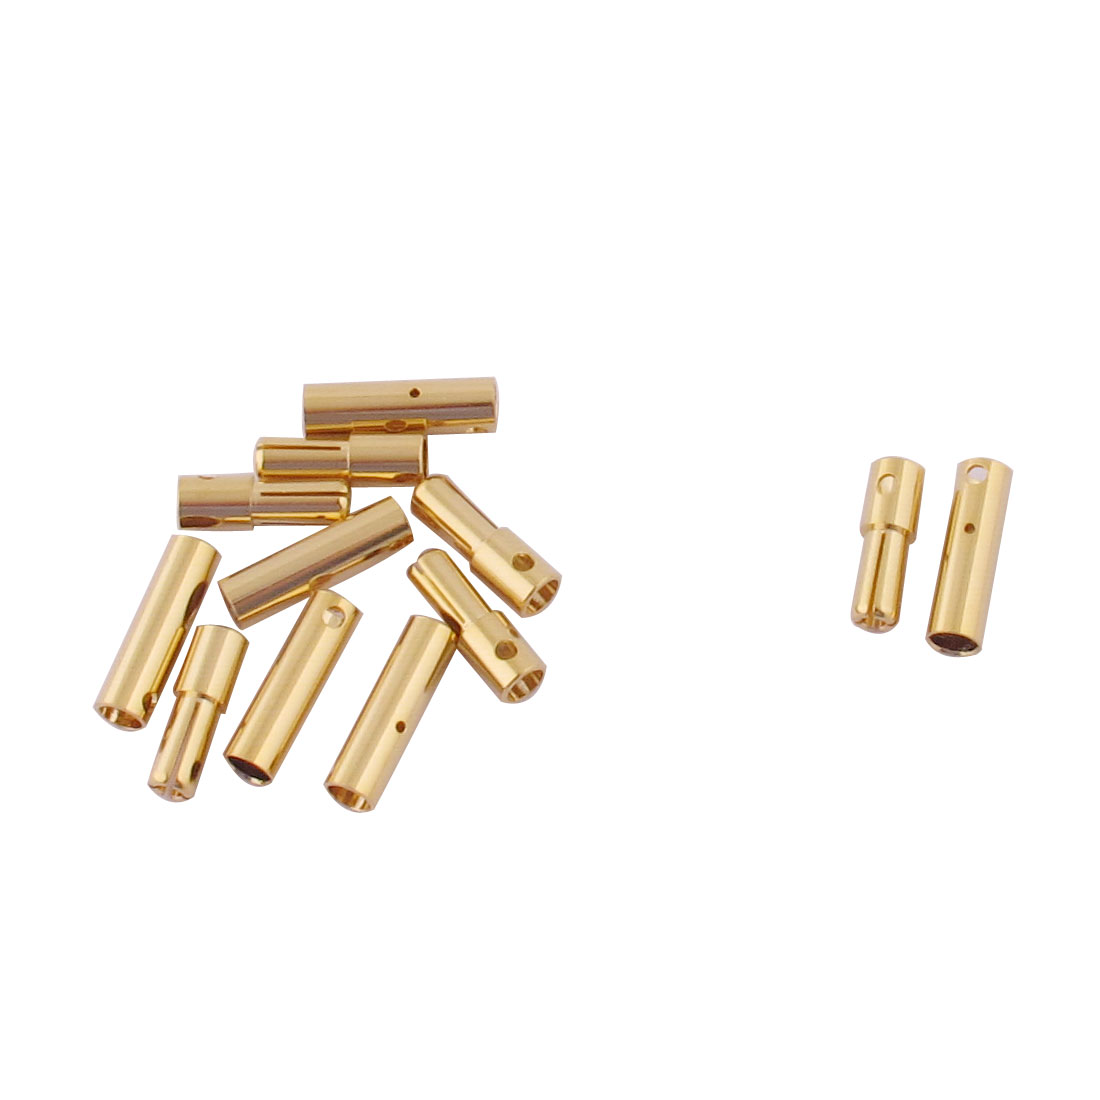 ESC RC LiPo Battery 4mm Male Female Banana Connector Gold Tone 6 Pairs